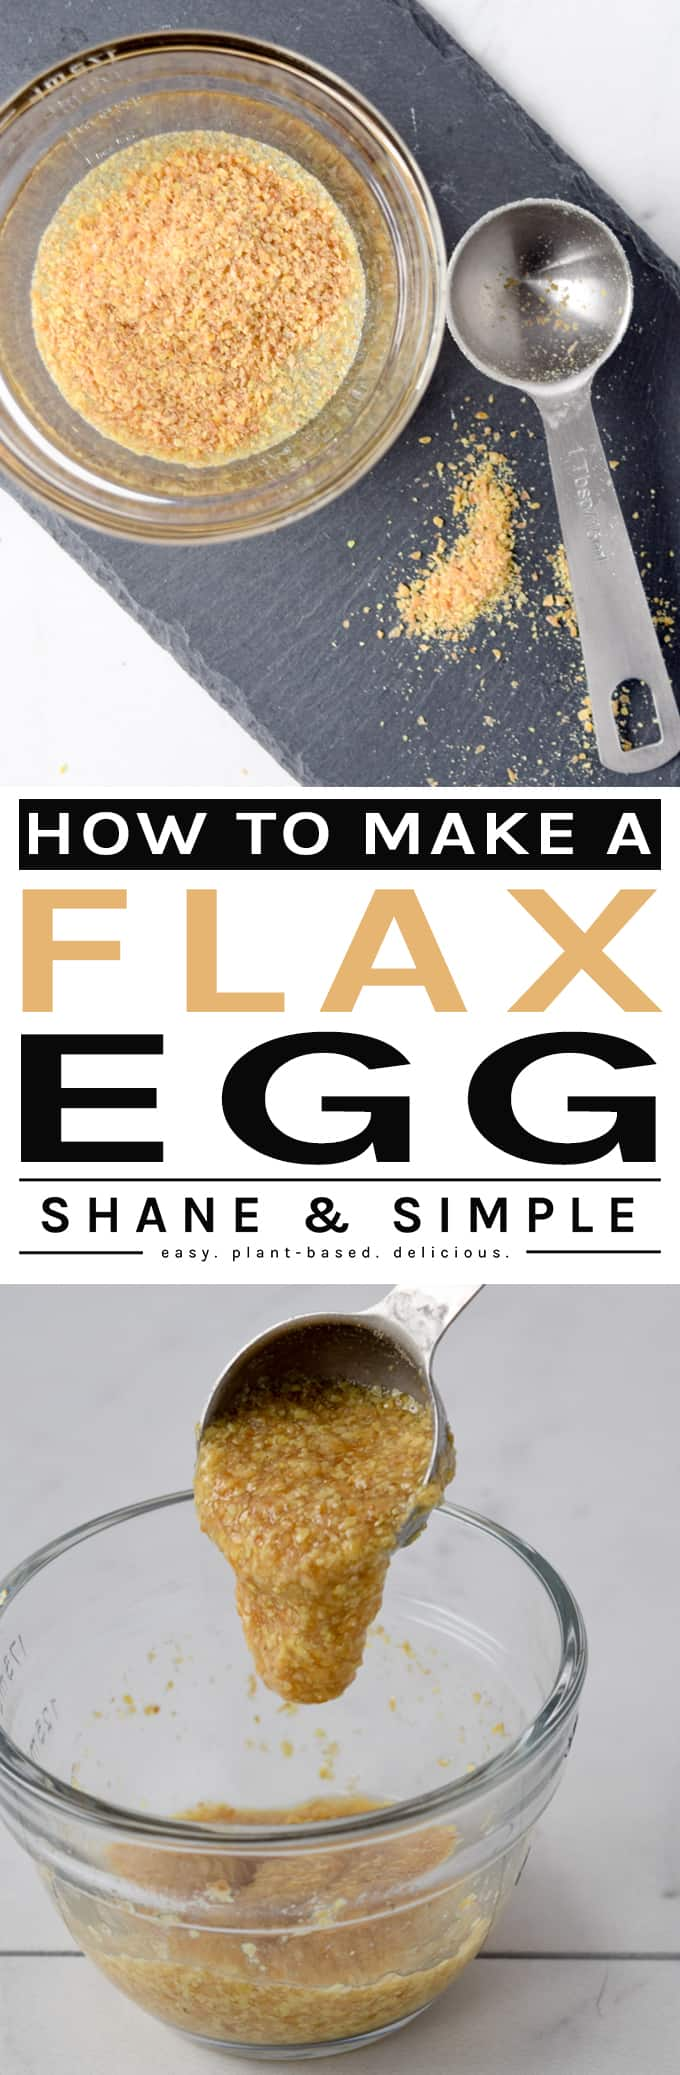 How To Make A Flax-Egg